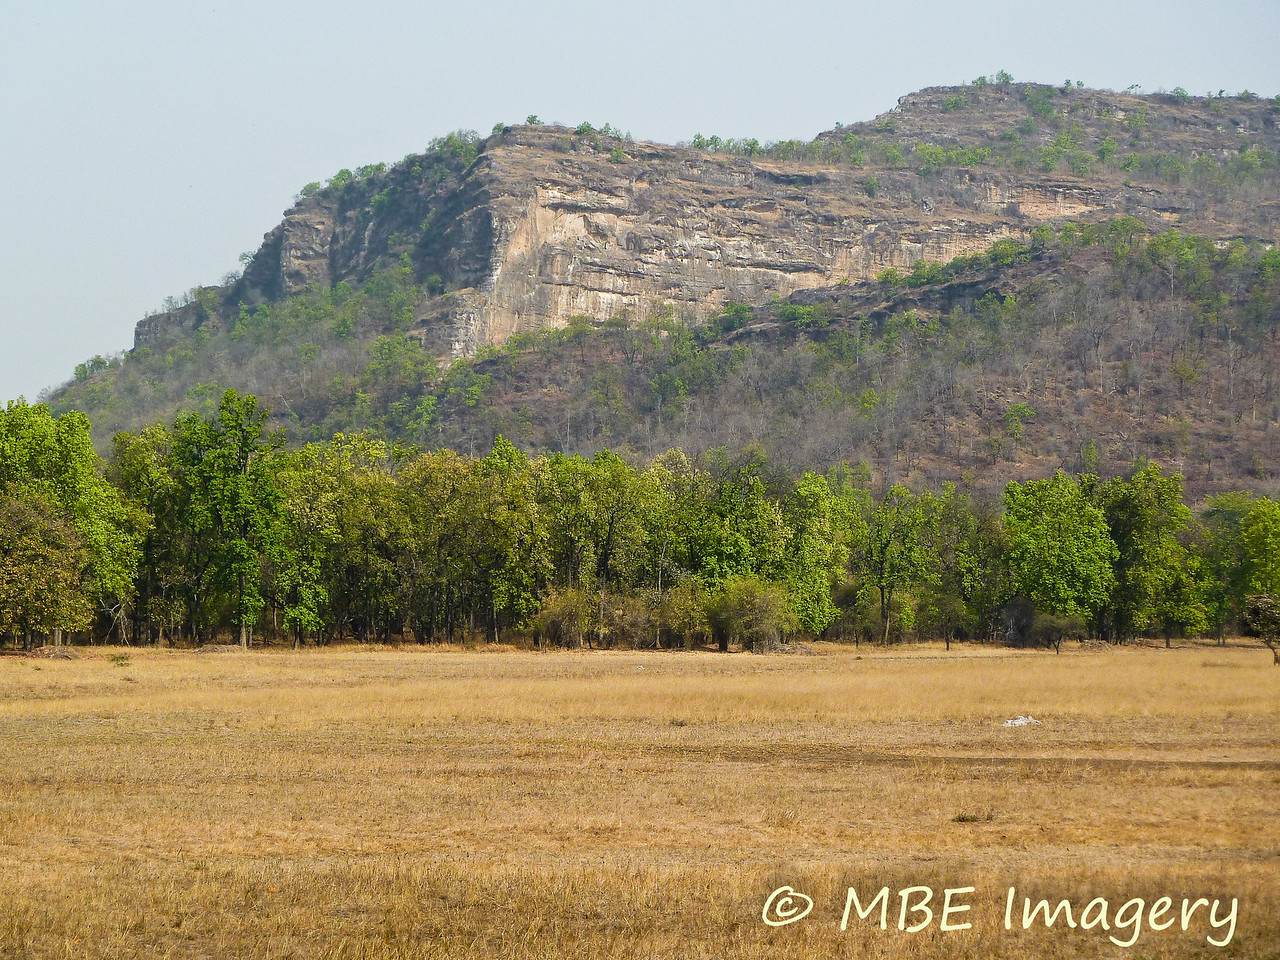 Rock outcropping at Bandhavgarh National Park